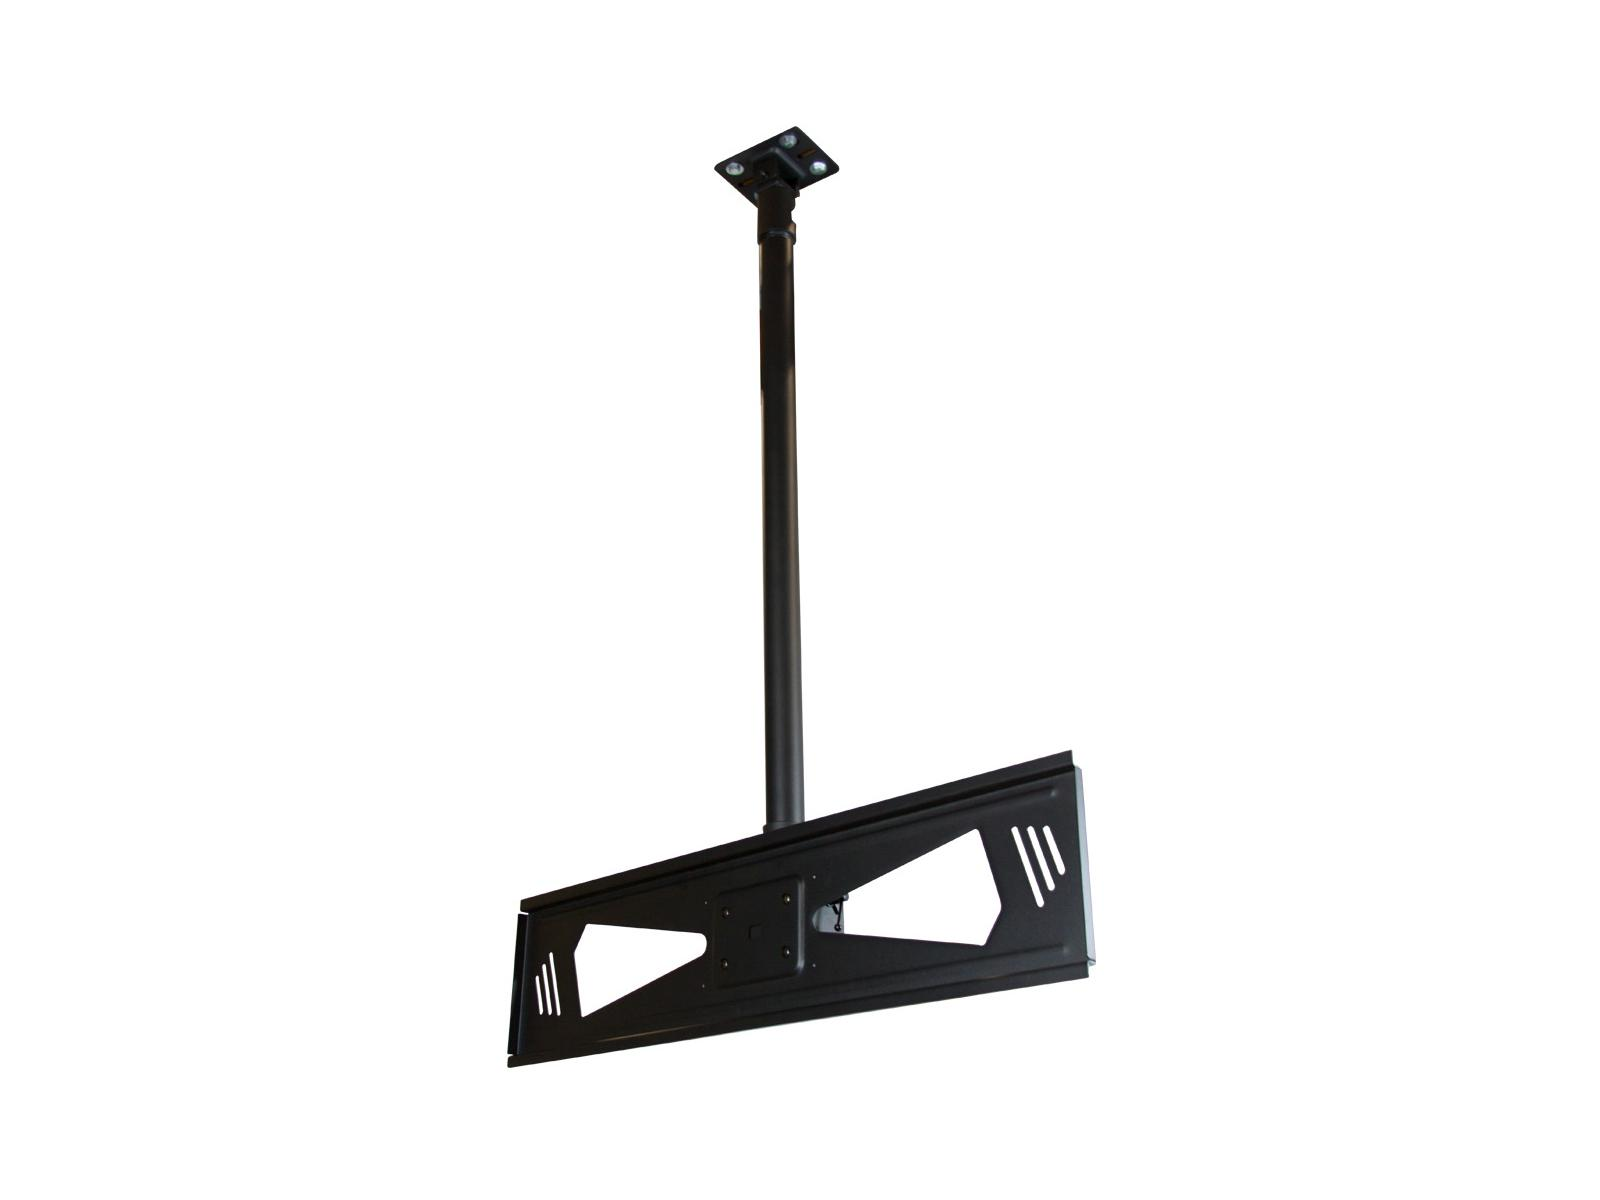 VZ-CMKiT-04 Universal Ceiling Mount Kit for 37 inch to 70 inch CCTV and Vdeo Wall Monitors by ViewZ